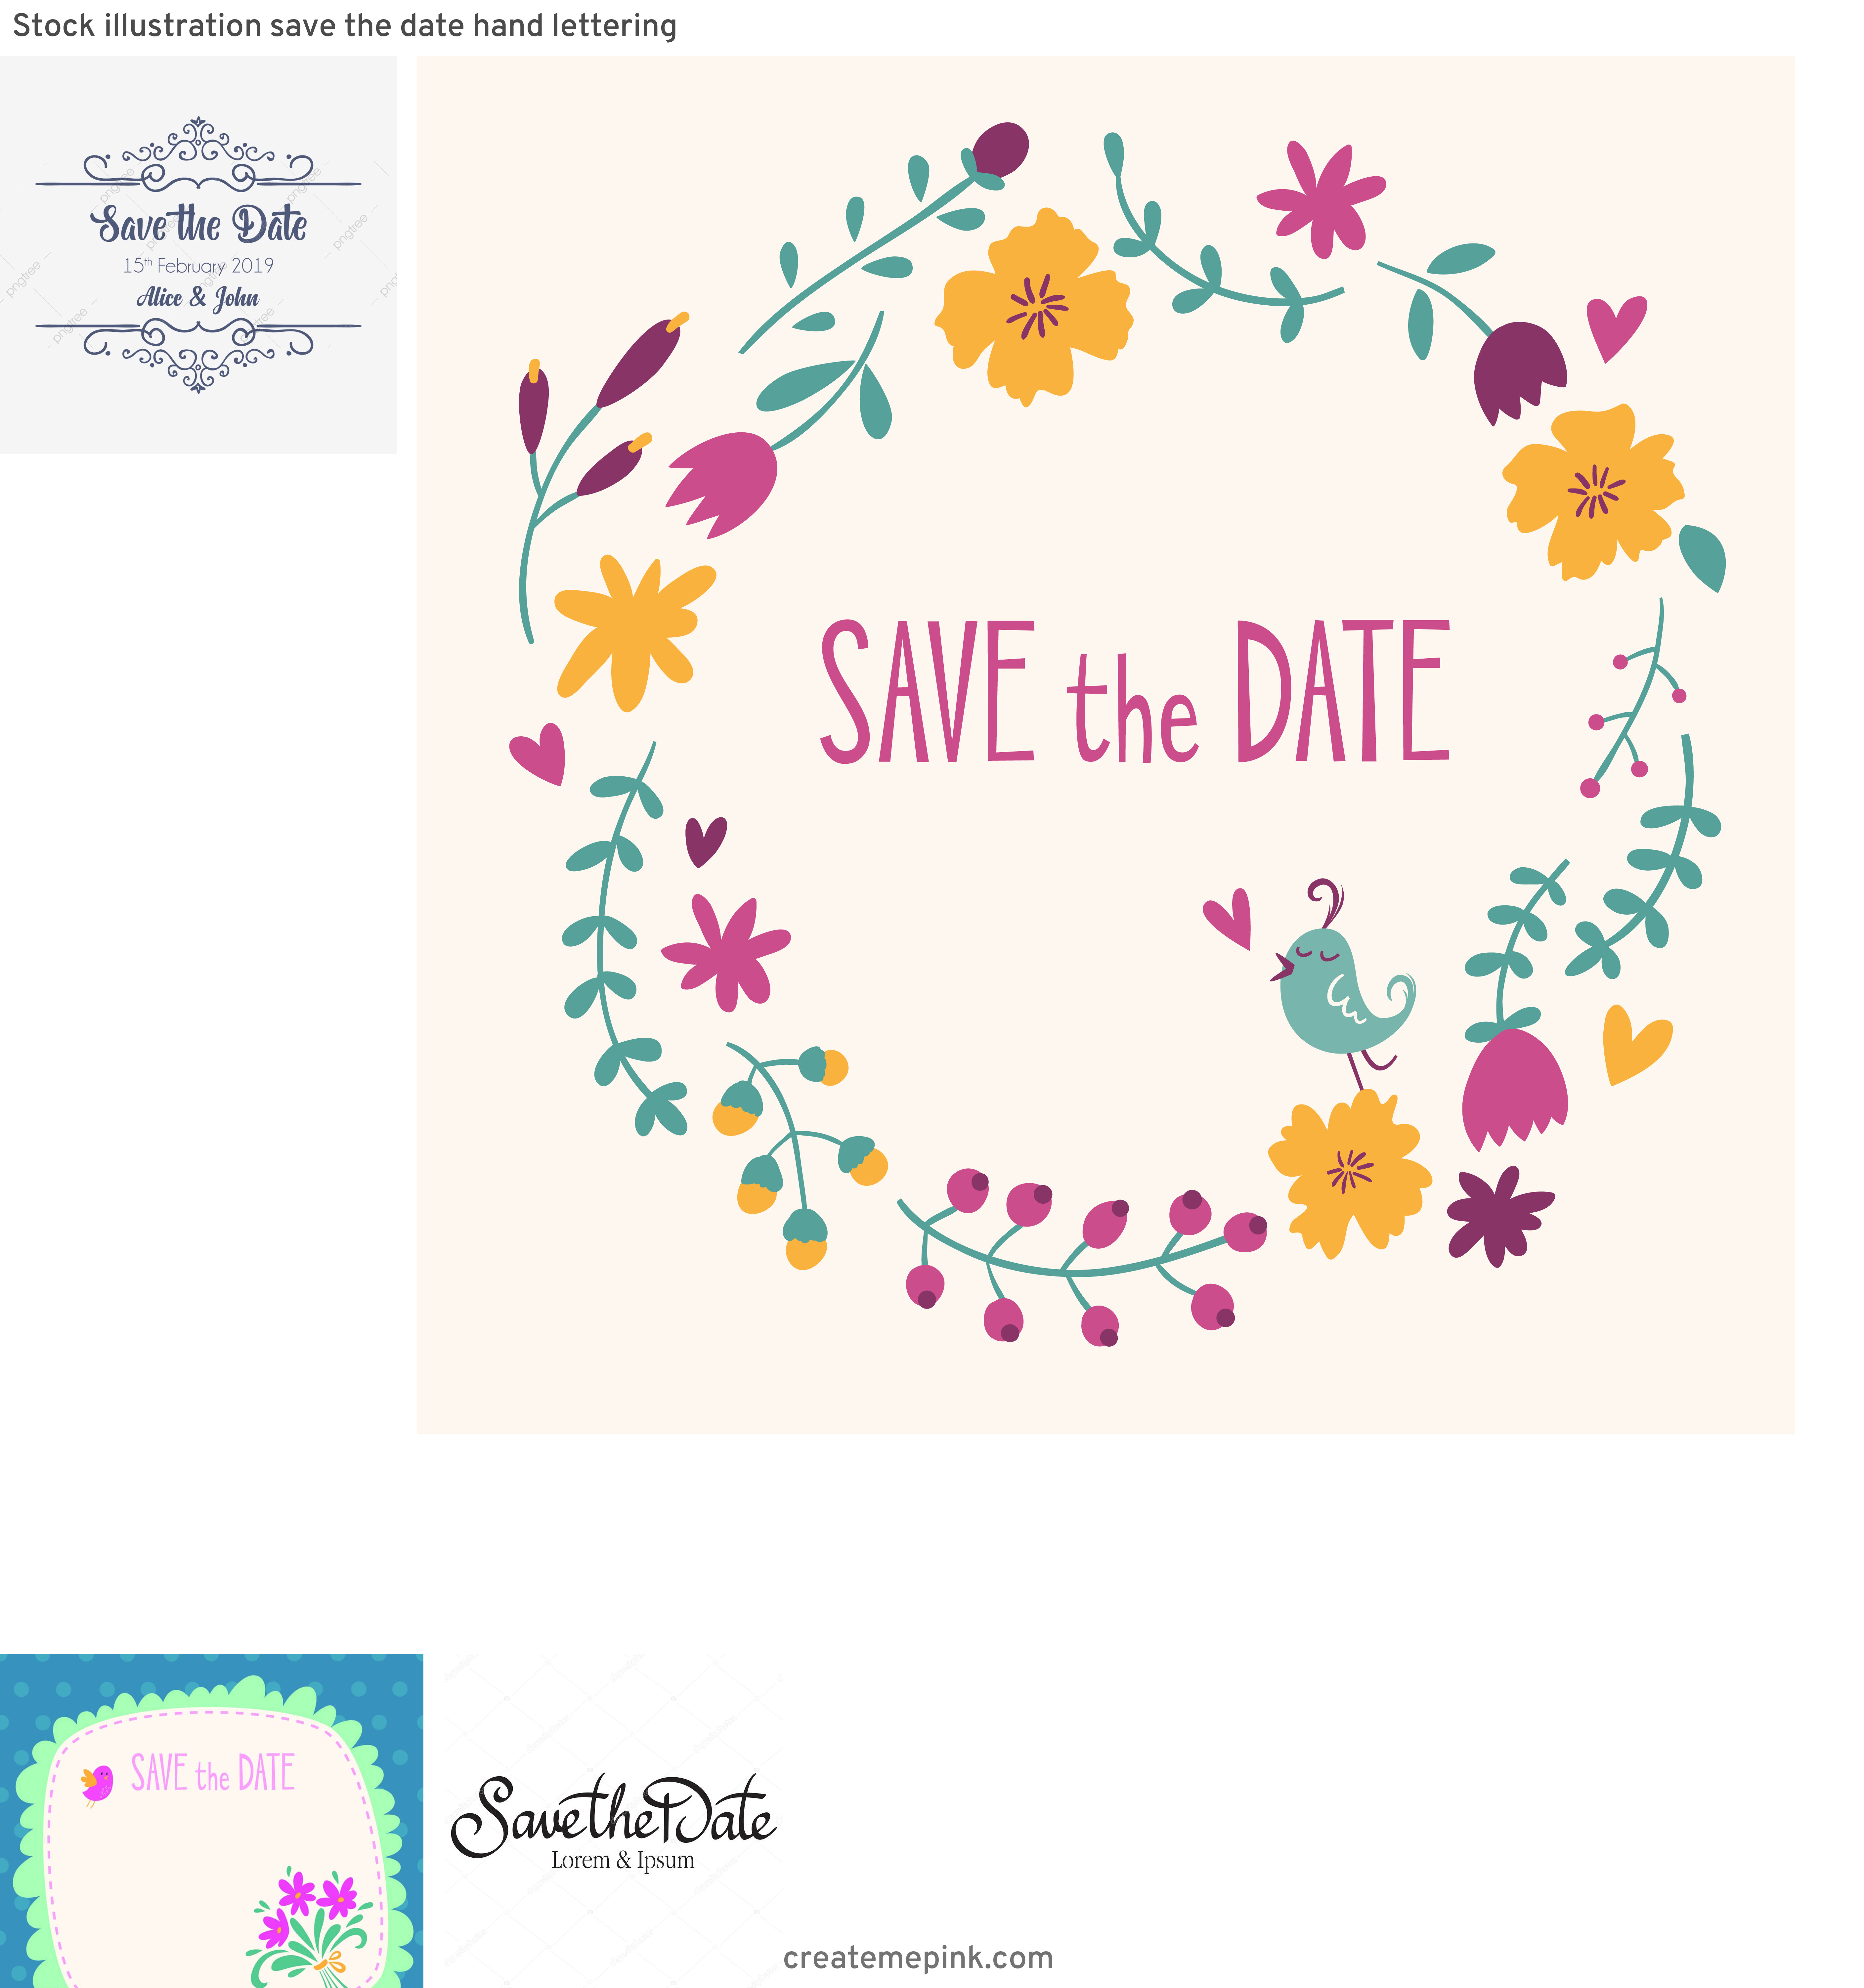 Save The Date Vector: Stock Illustration Save The Date Hand Lettering